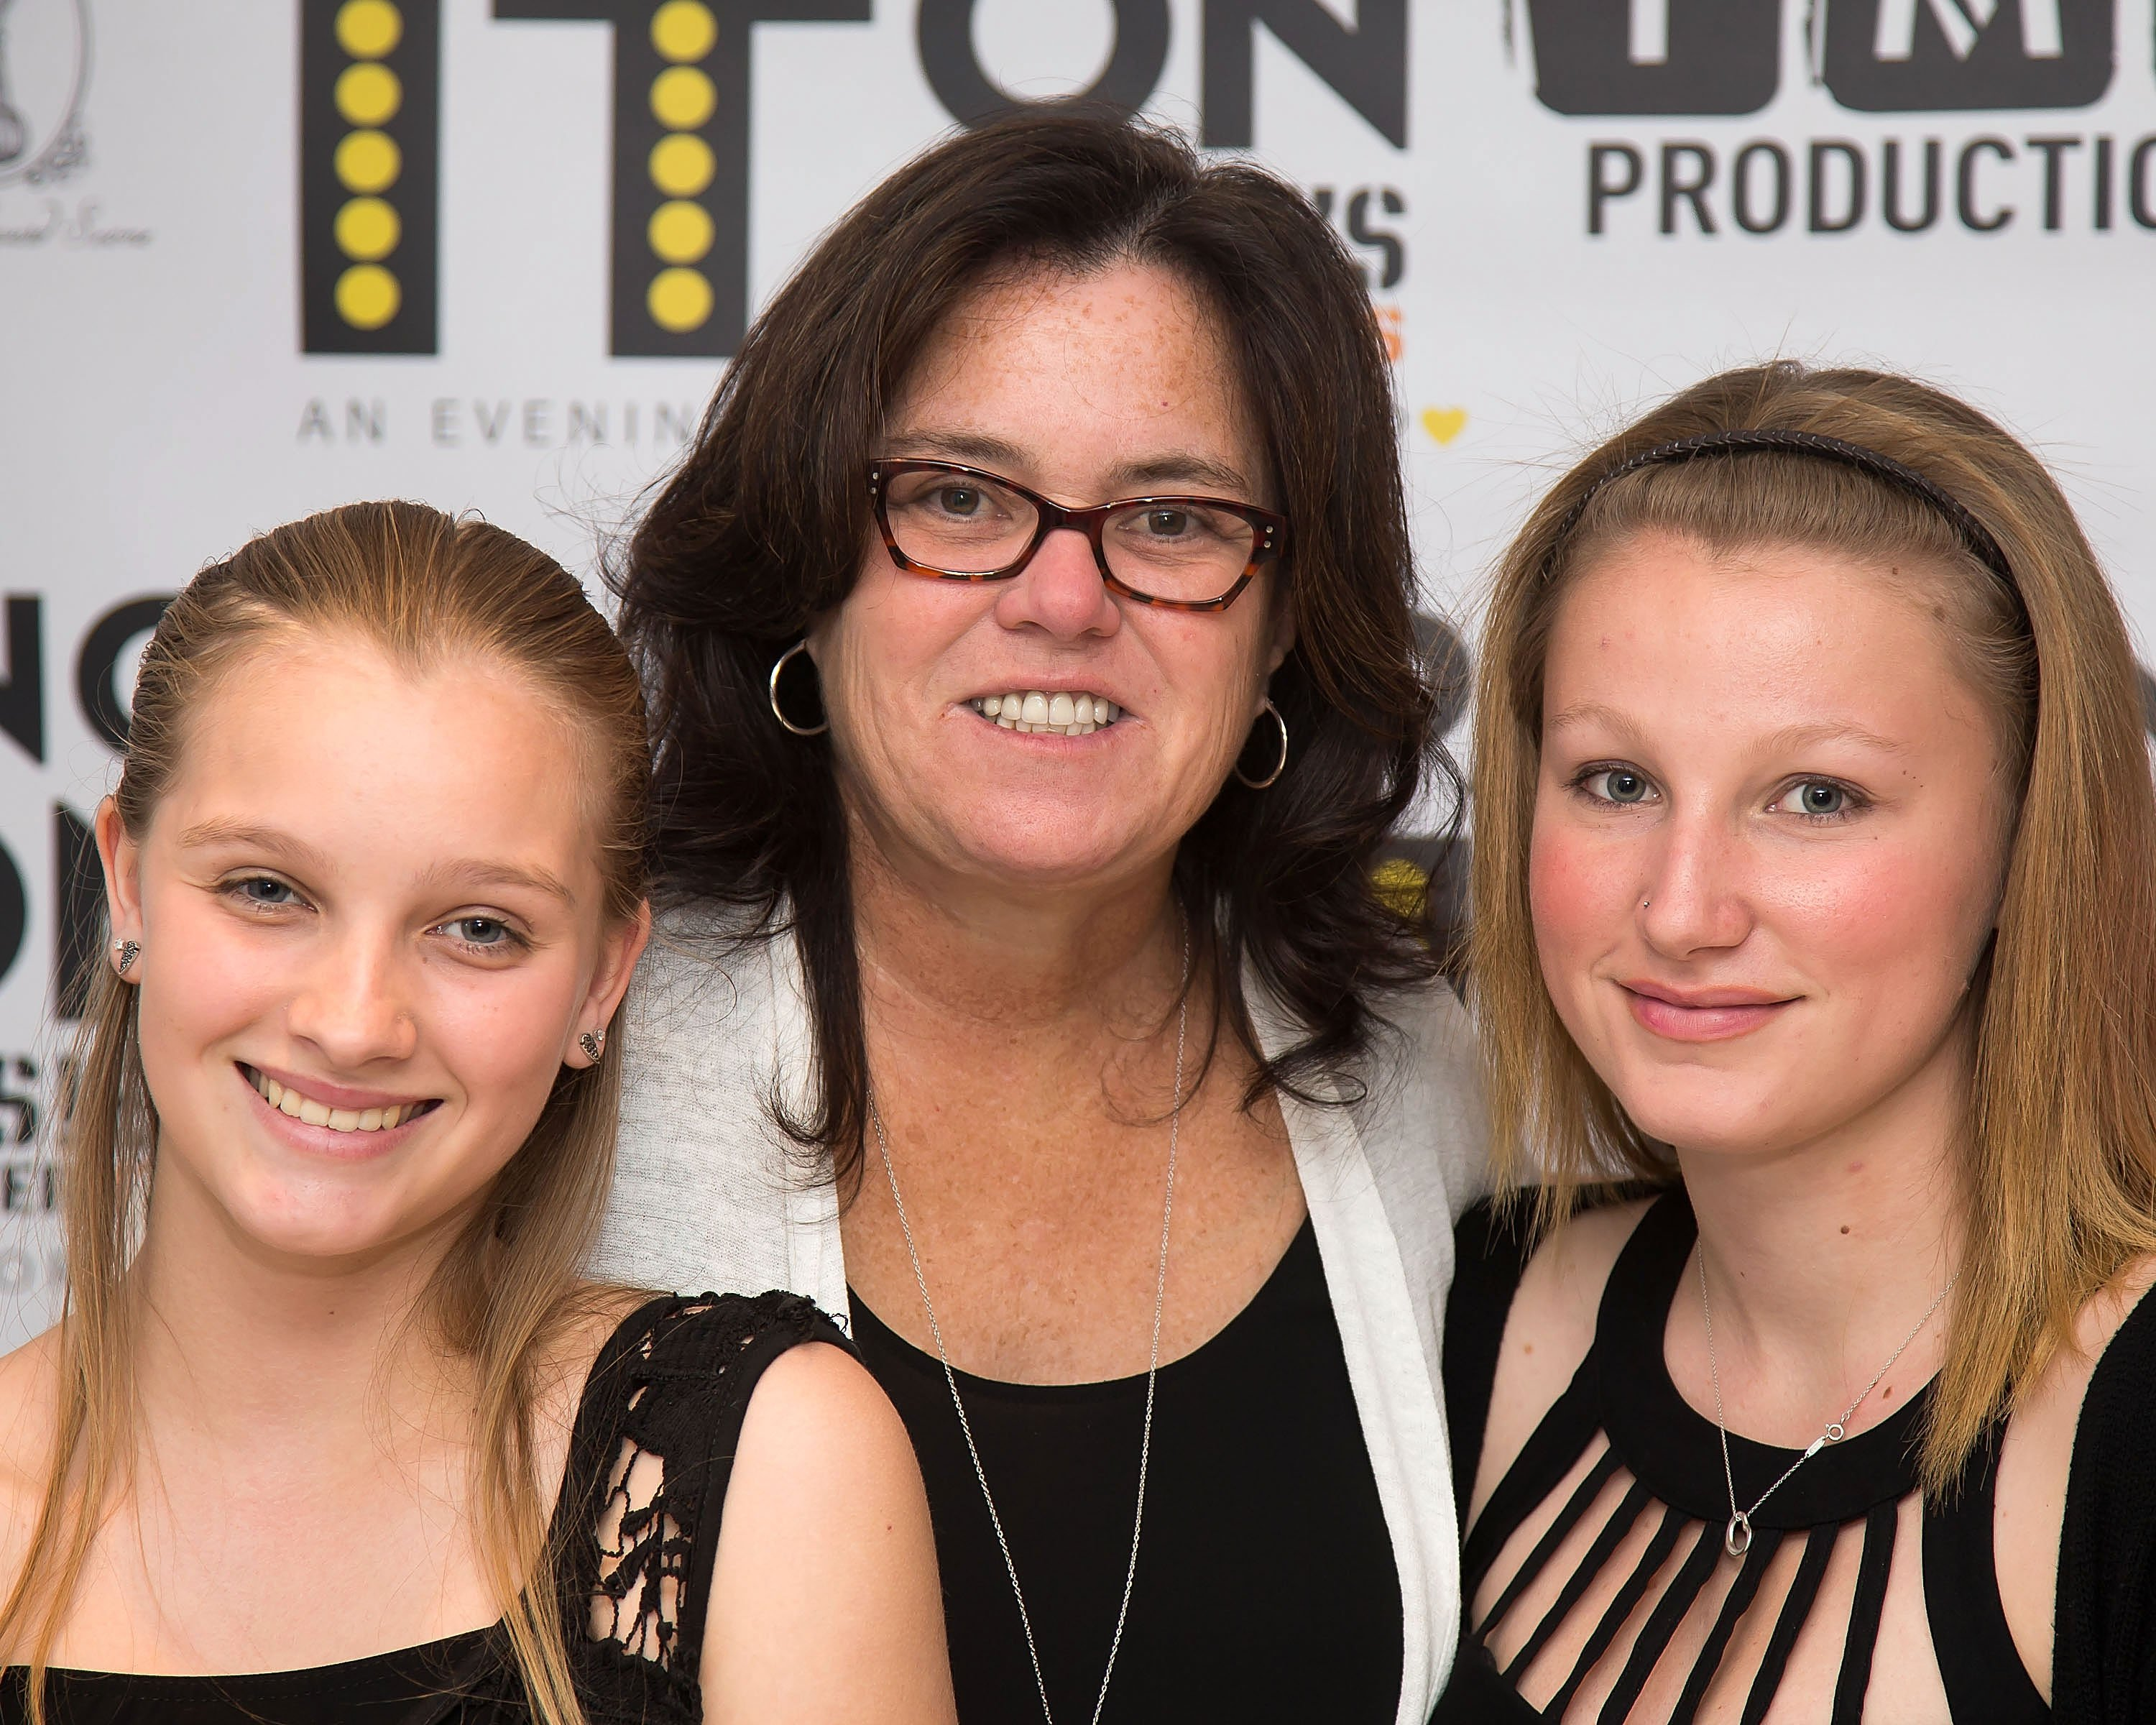 Vivienne Rose O'Donnell, Rosie O'Donnell and Chelsea Belle O'Donnell attend the 5th Annual Rosie's Theater Kids Spring Benefit at The Alvin Ailey Citigroup Theater on May 17, 2015, in New York City. | Source: Getty Images.